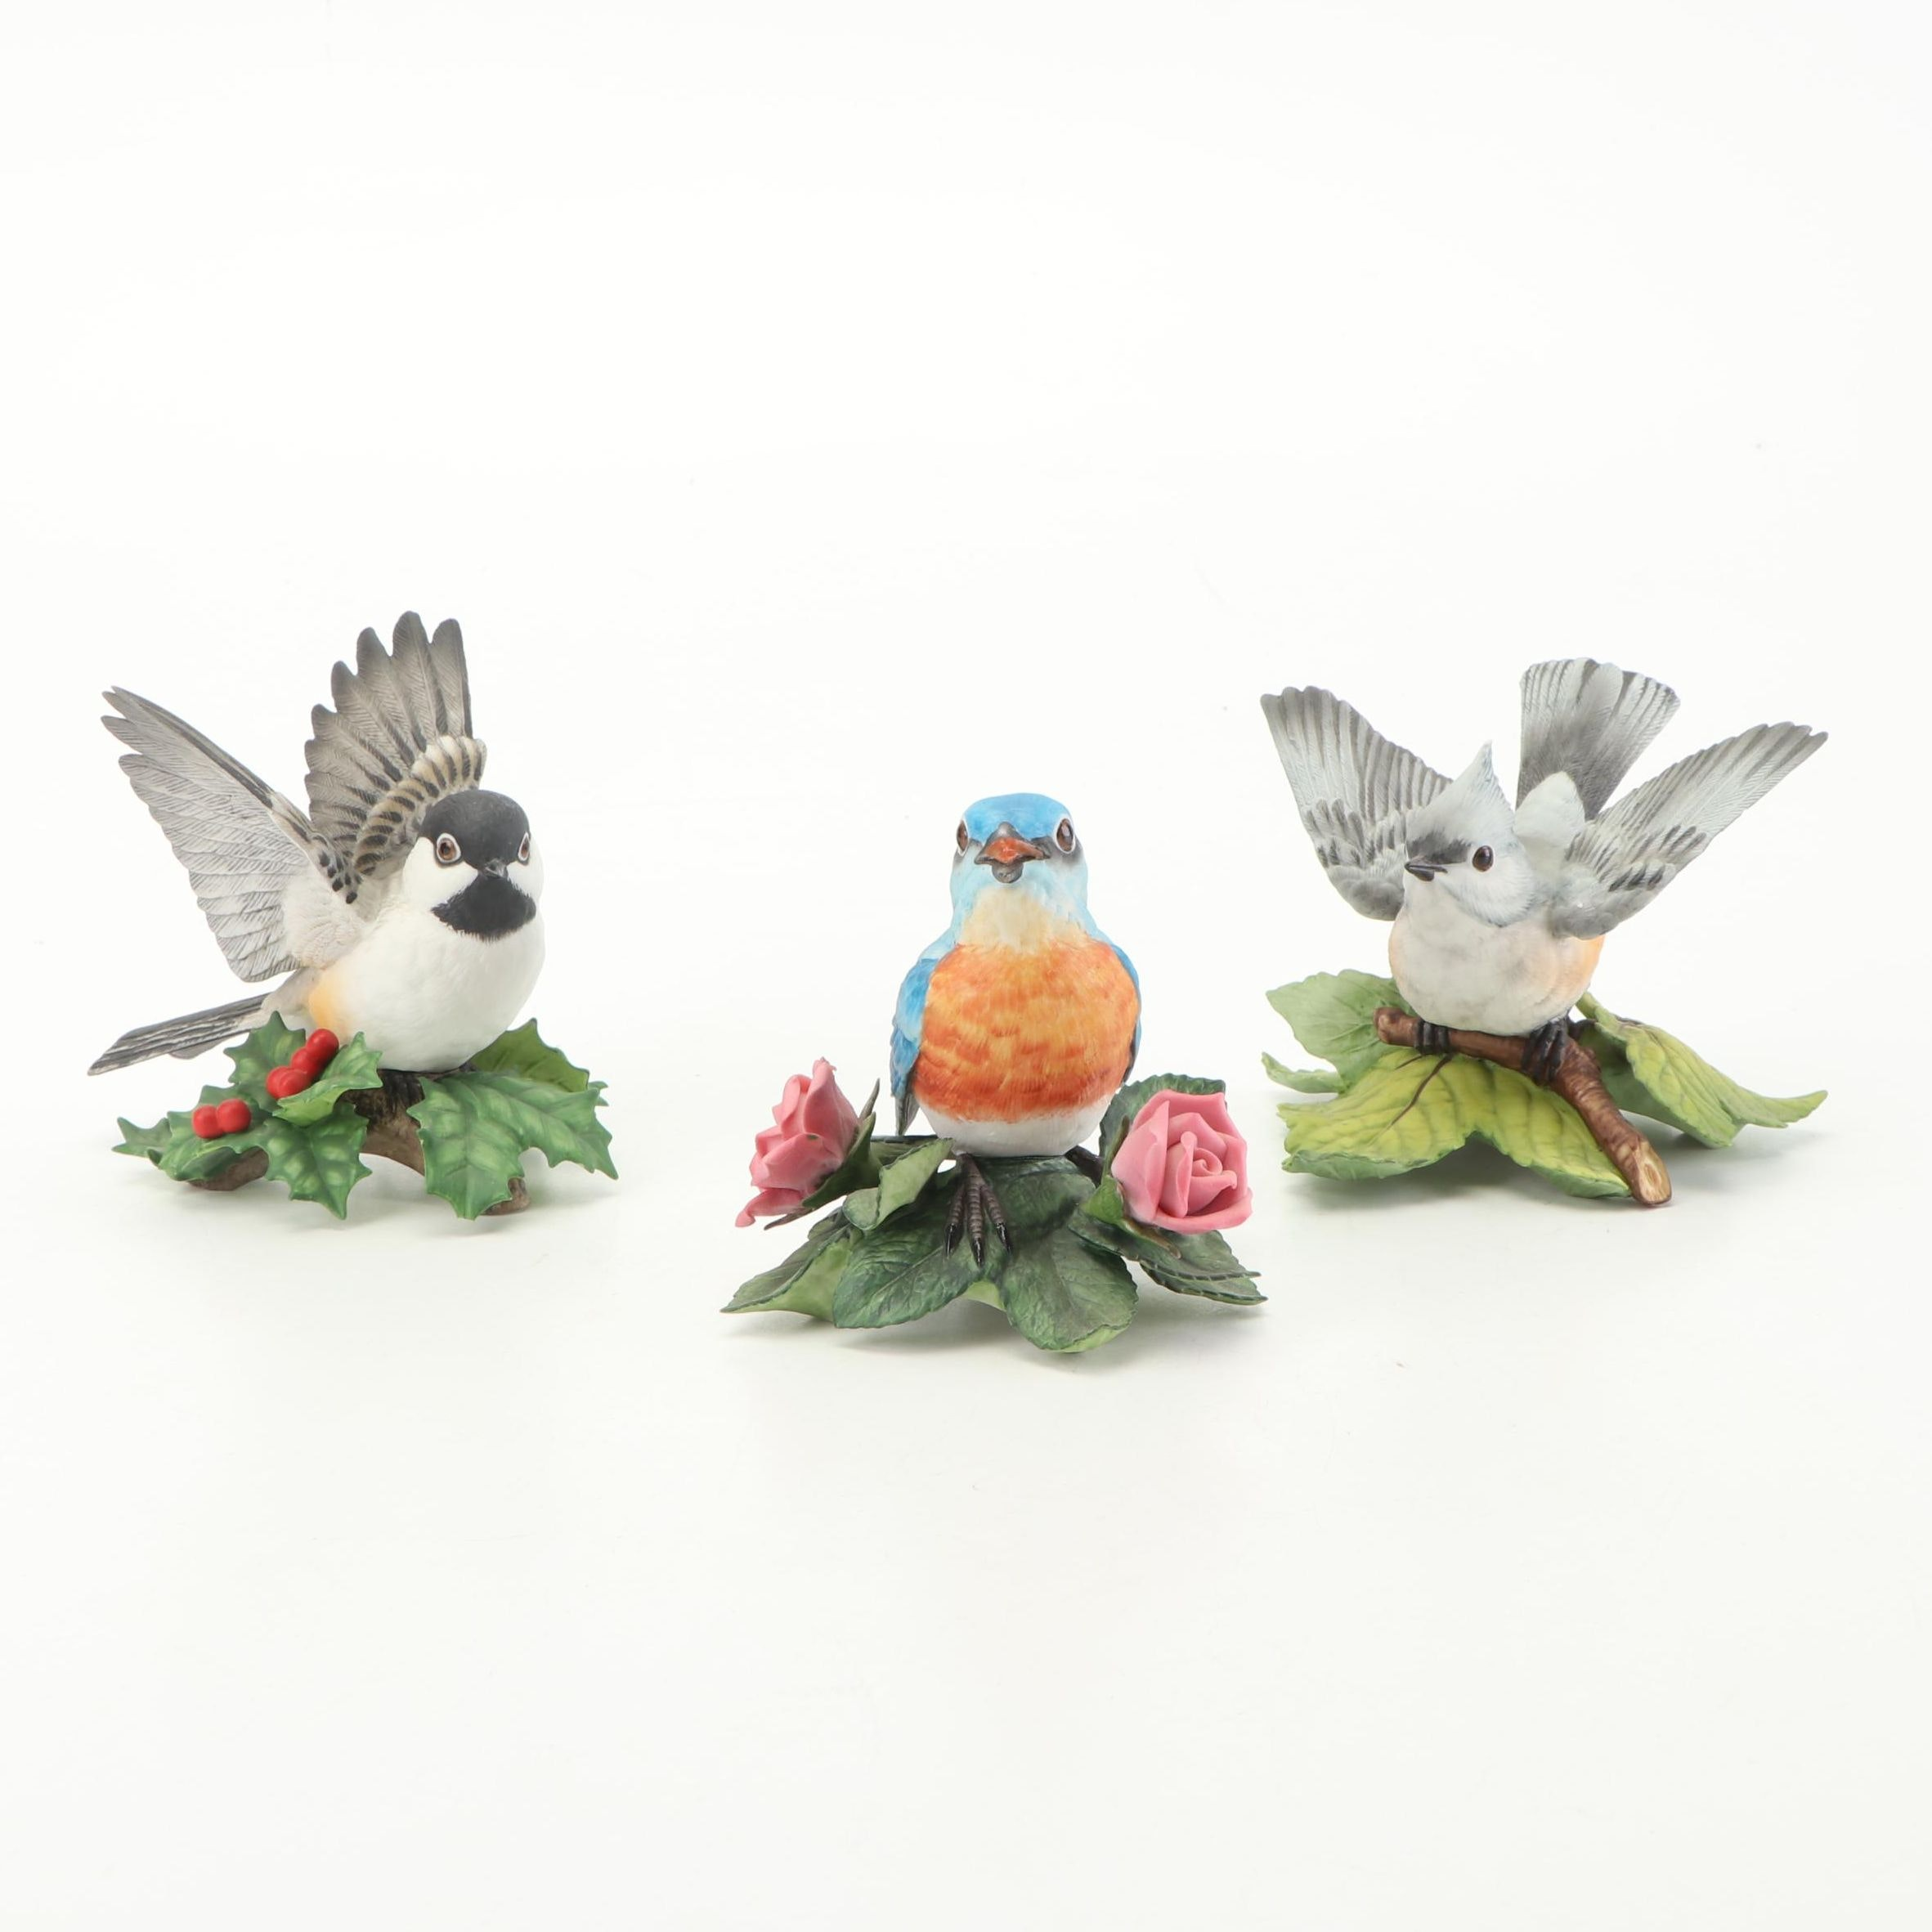 Lenox Hand-Painted Porcelain Bird Figurines, c 1980s